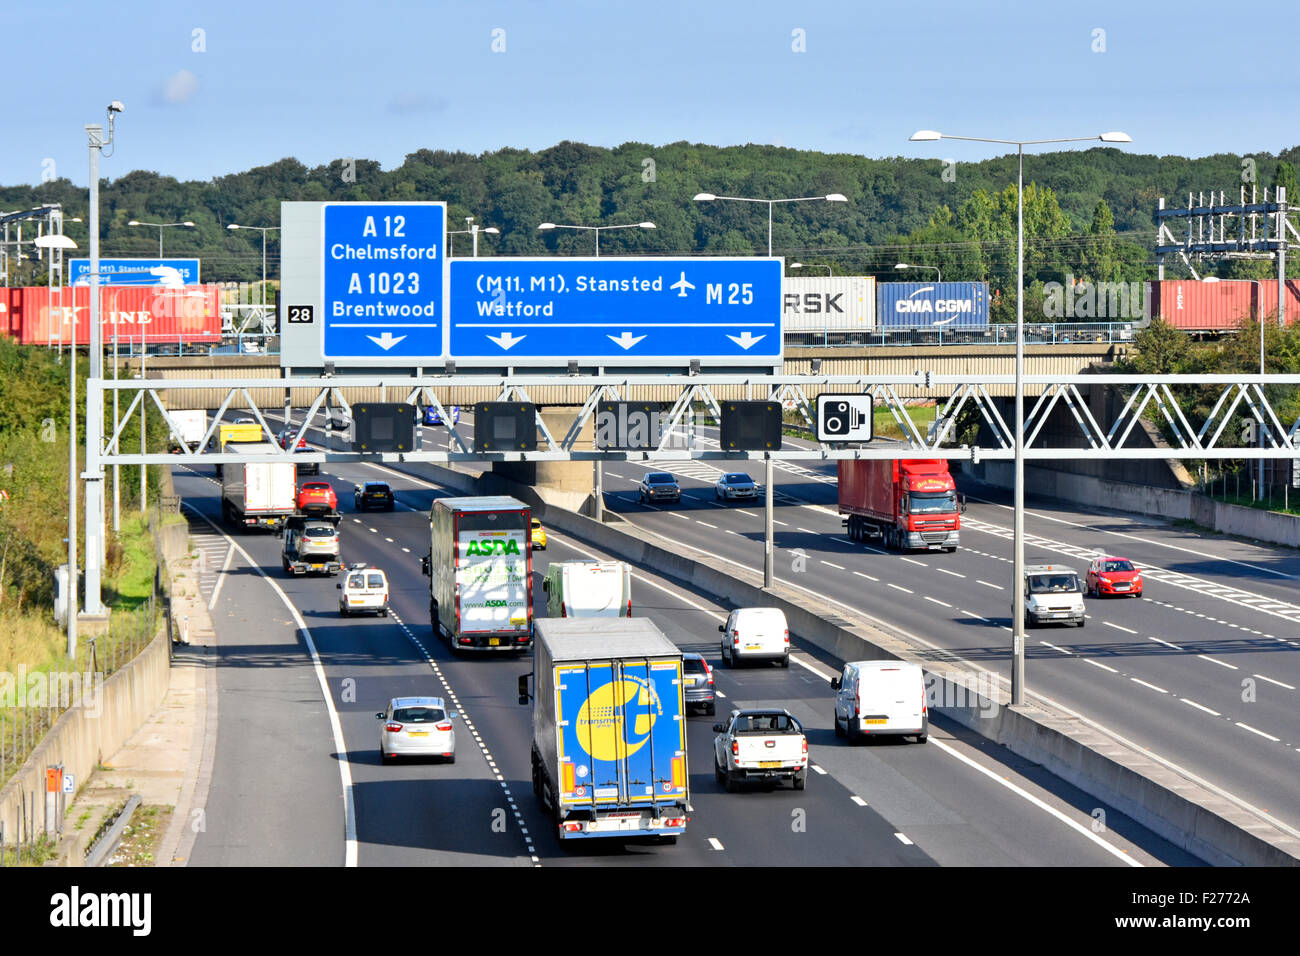 M25 motorway railway bridge & container freight train crossing above road traffic at junction 28 Brentwood Essex - Stock Image